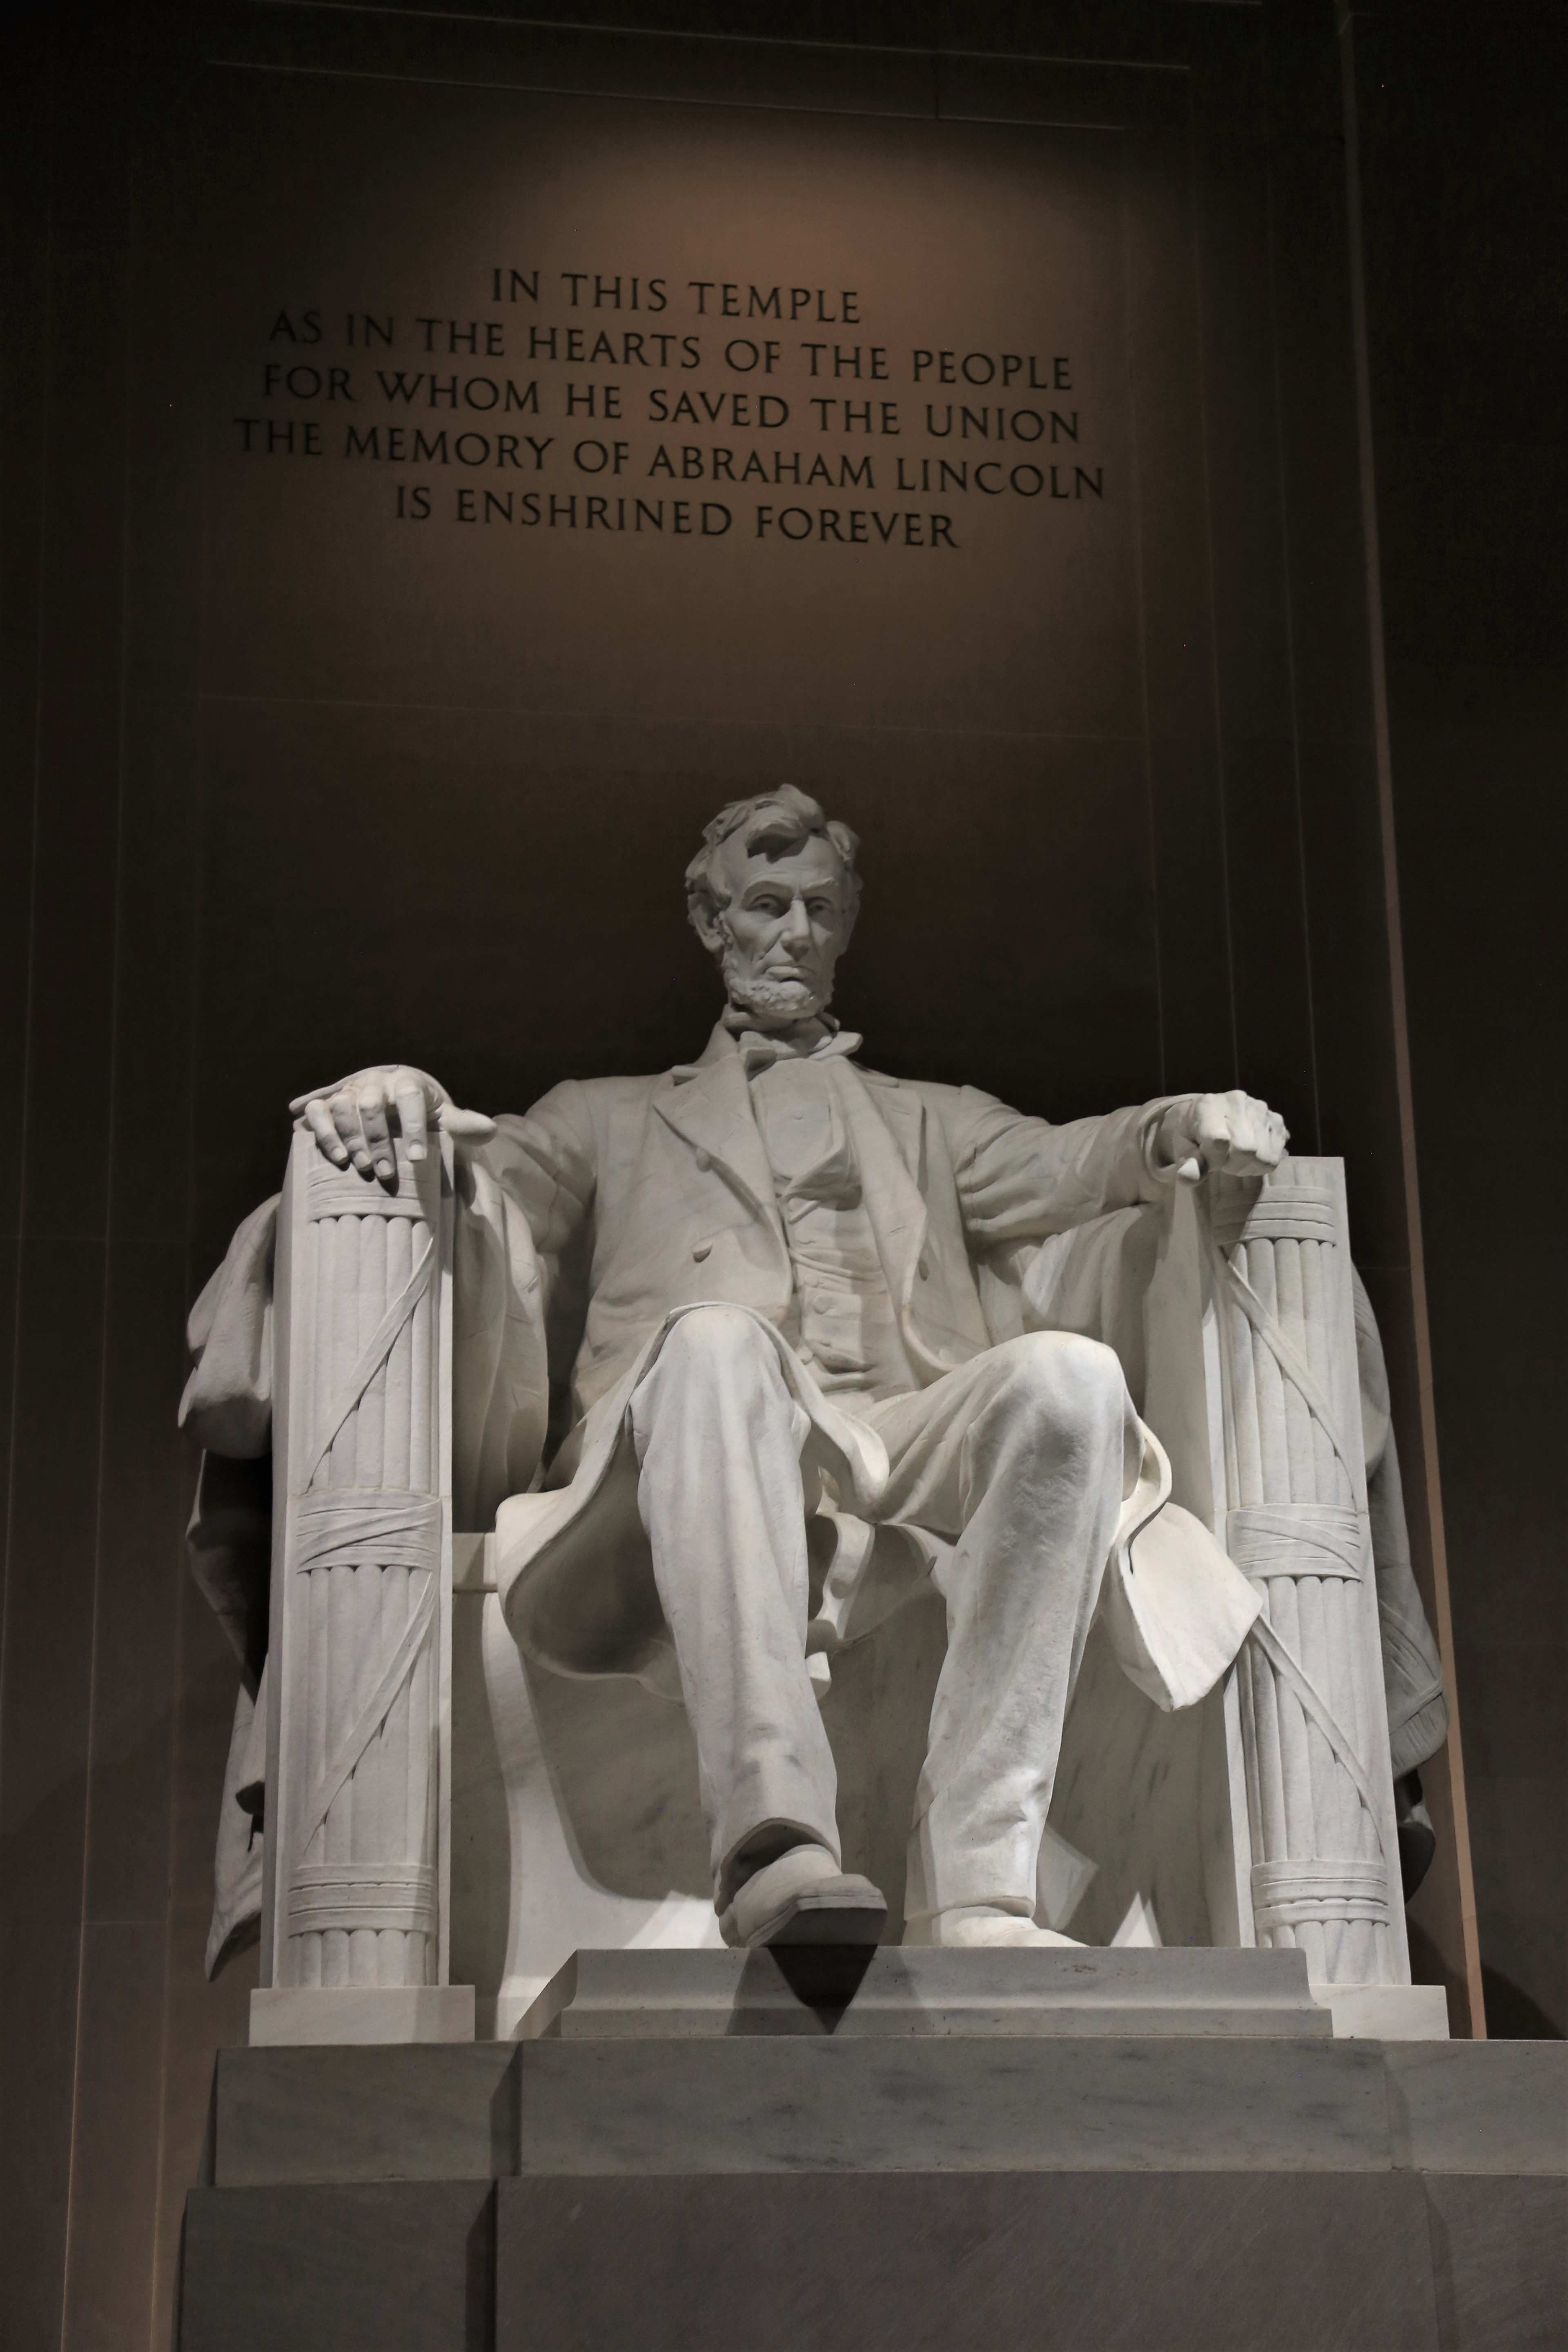 Washington, the place of monuments, Presidents, and squirrels